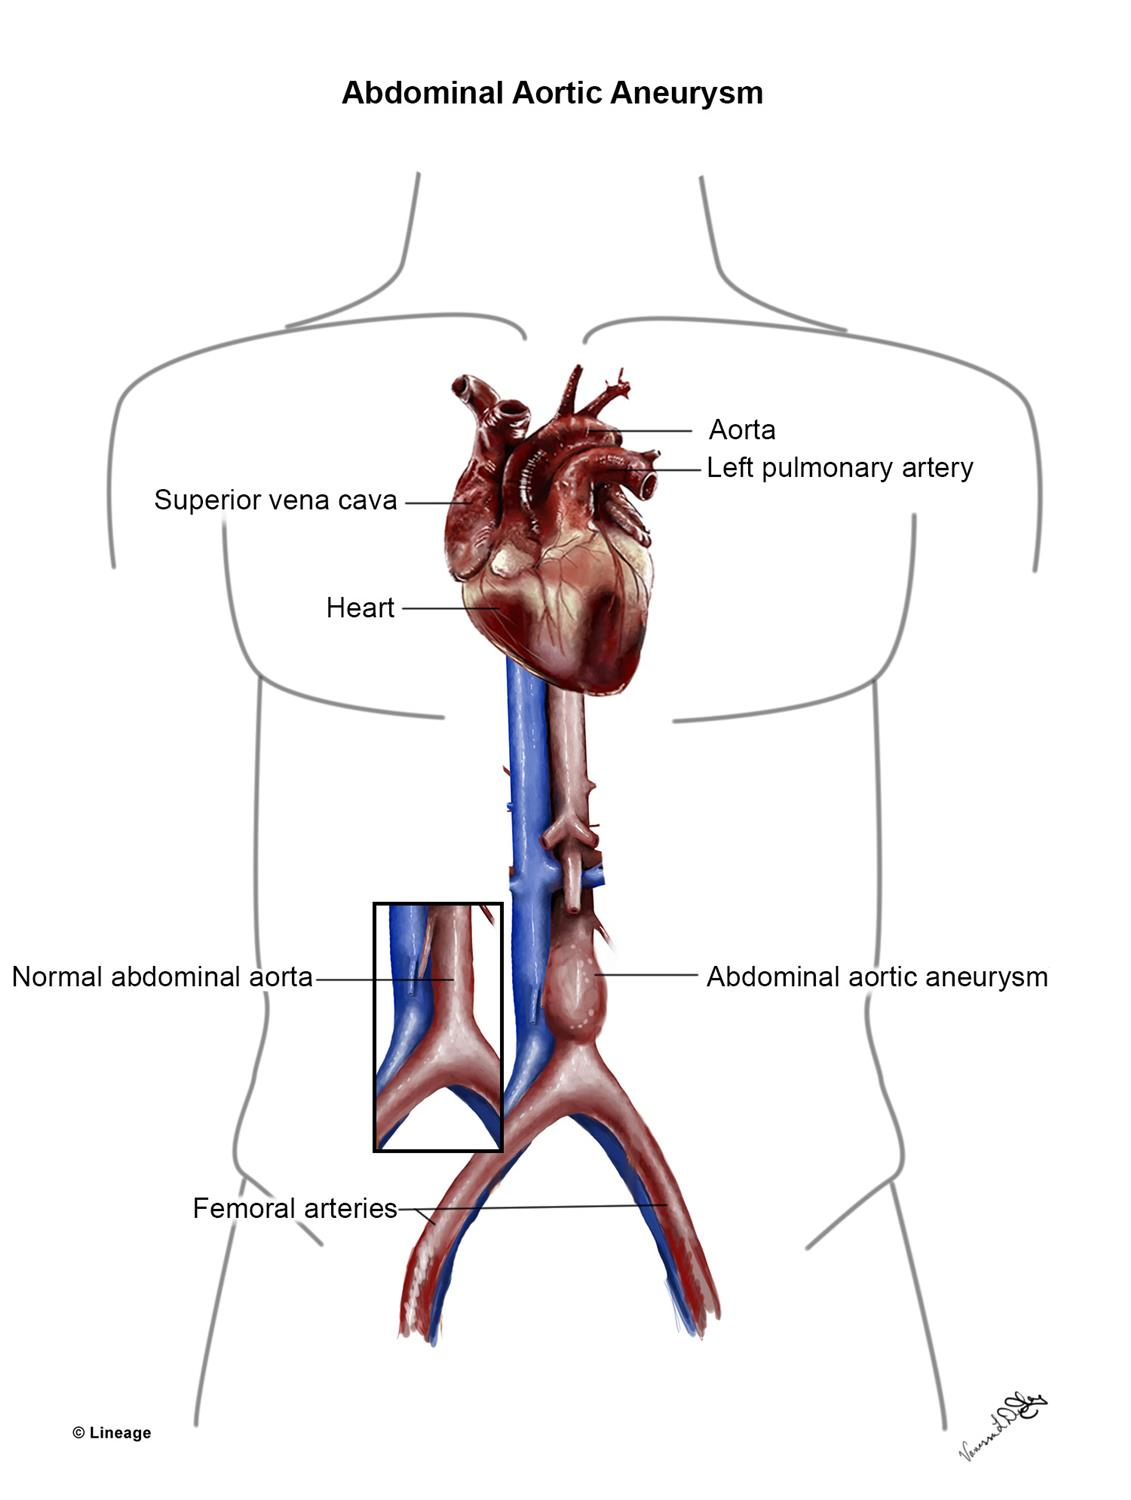 https://upload.medbullets.com/topic/108043/images/081117vldcardiacaorticaneurysm.jpg